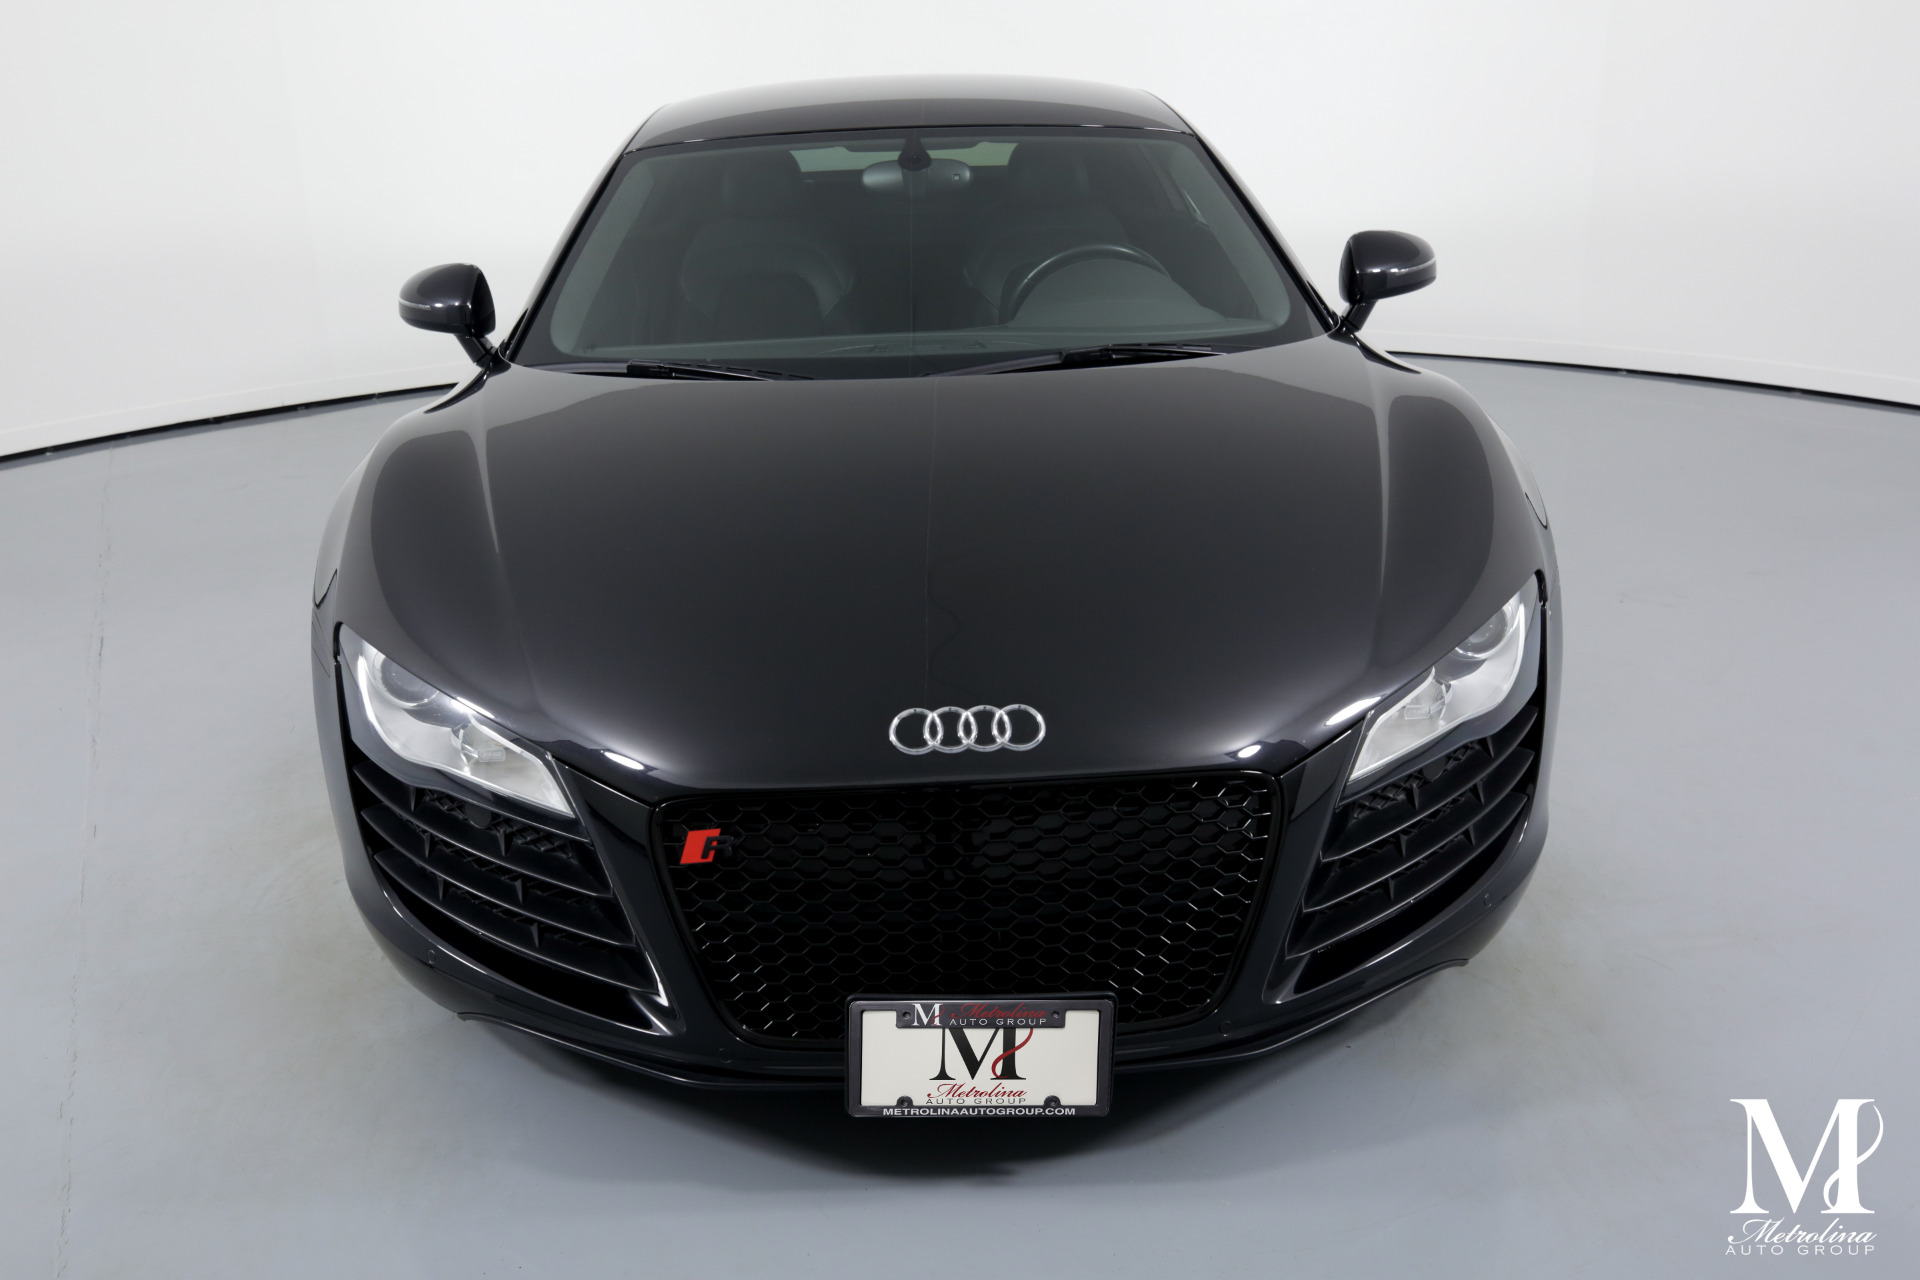 Used 2009 Audi R8 quattro for sale $62,996 at Metrolina Auto Group in Charlotte NC 28217 - 3